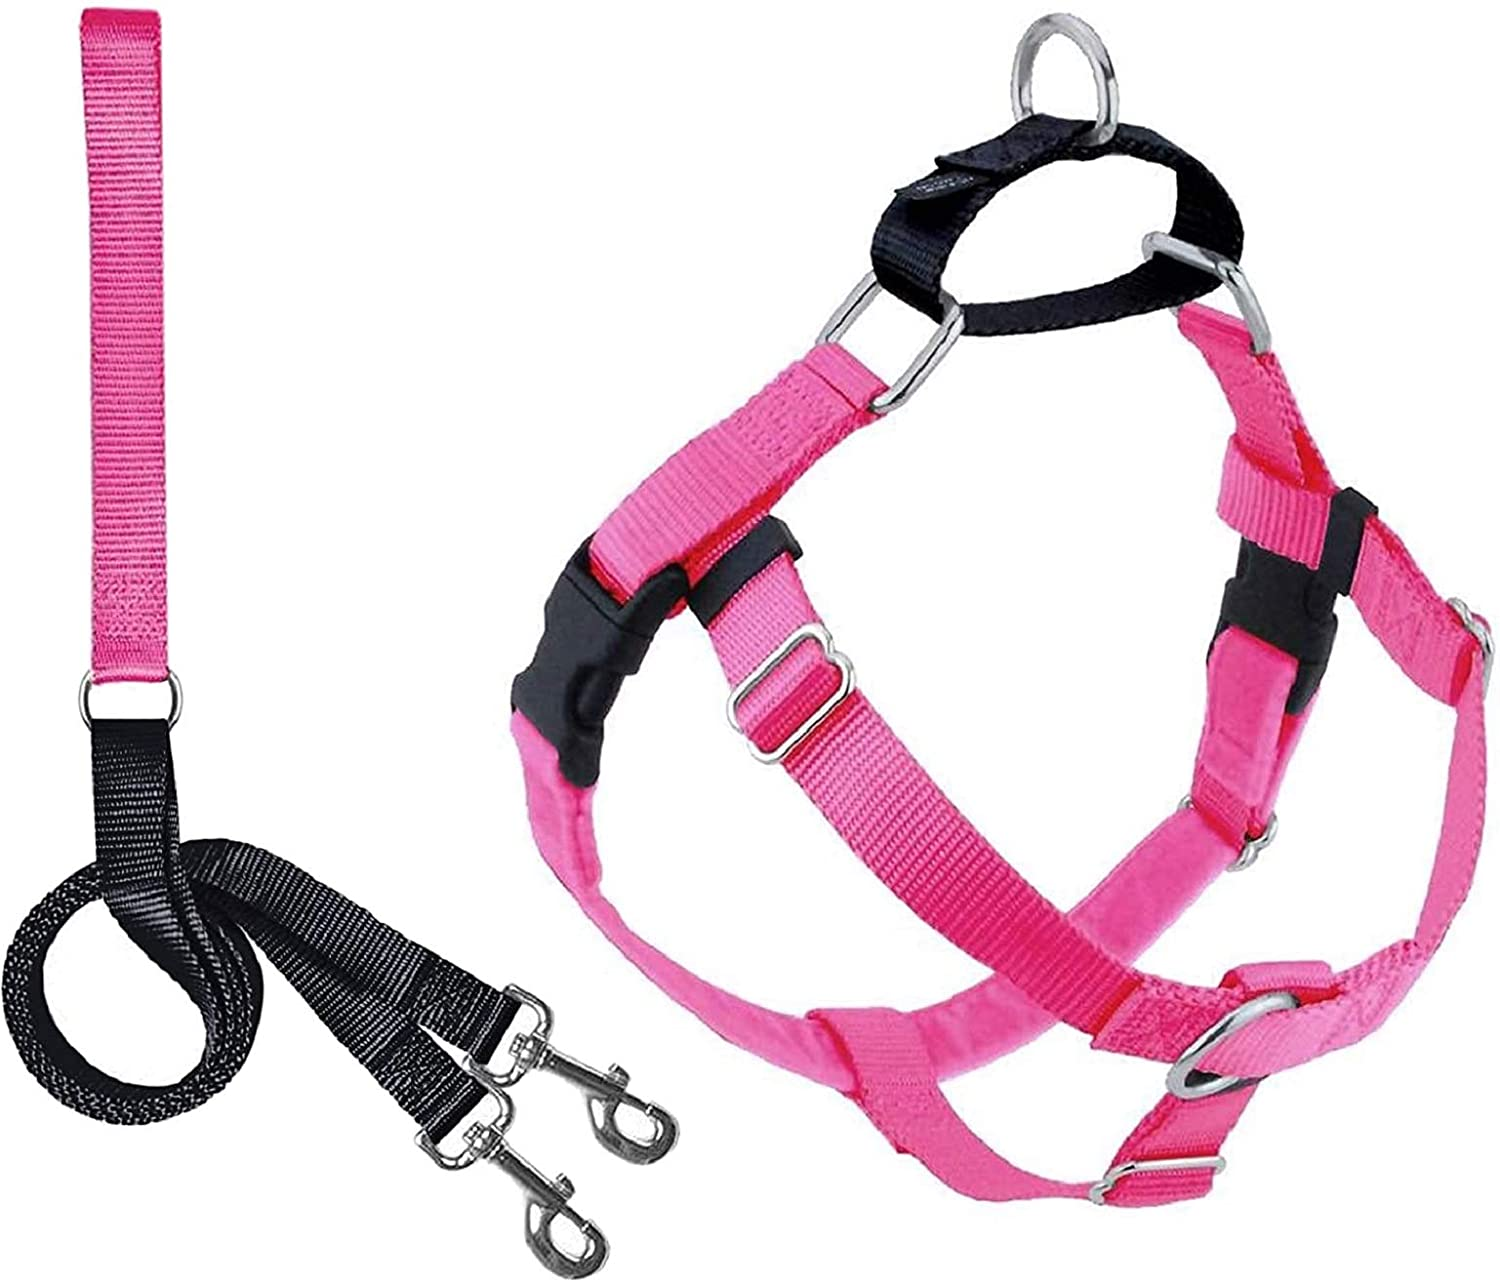 2 Challenge the lowest price Hounds Year-end annual account Design Freedom No Adjustable Dog Harness Gentle Pull